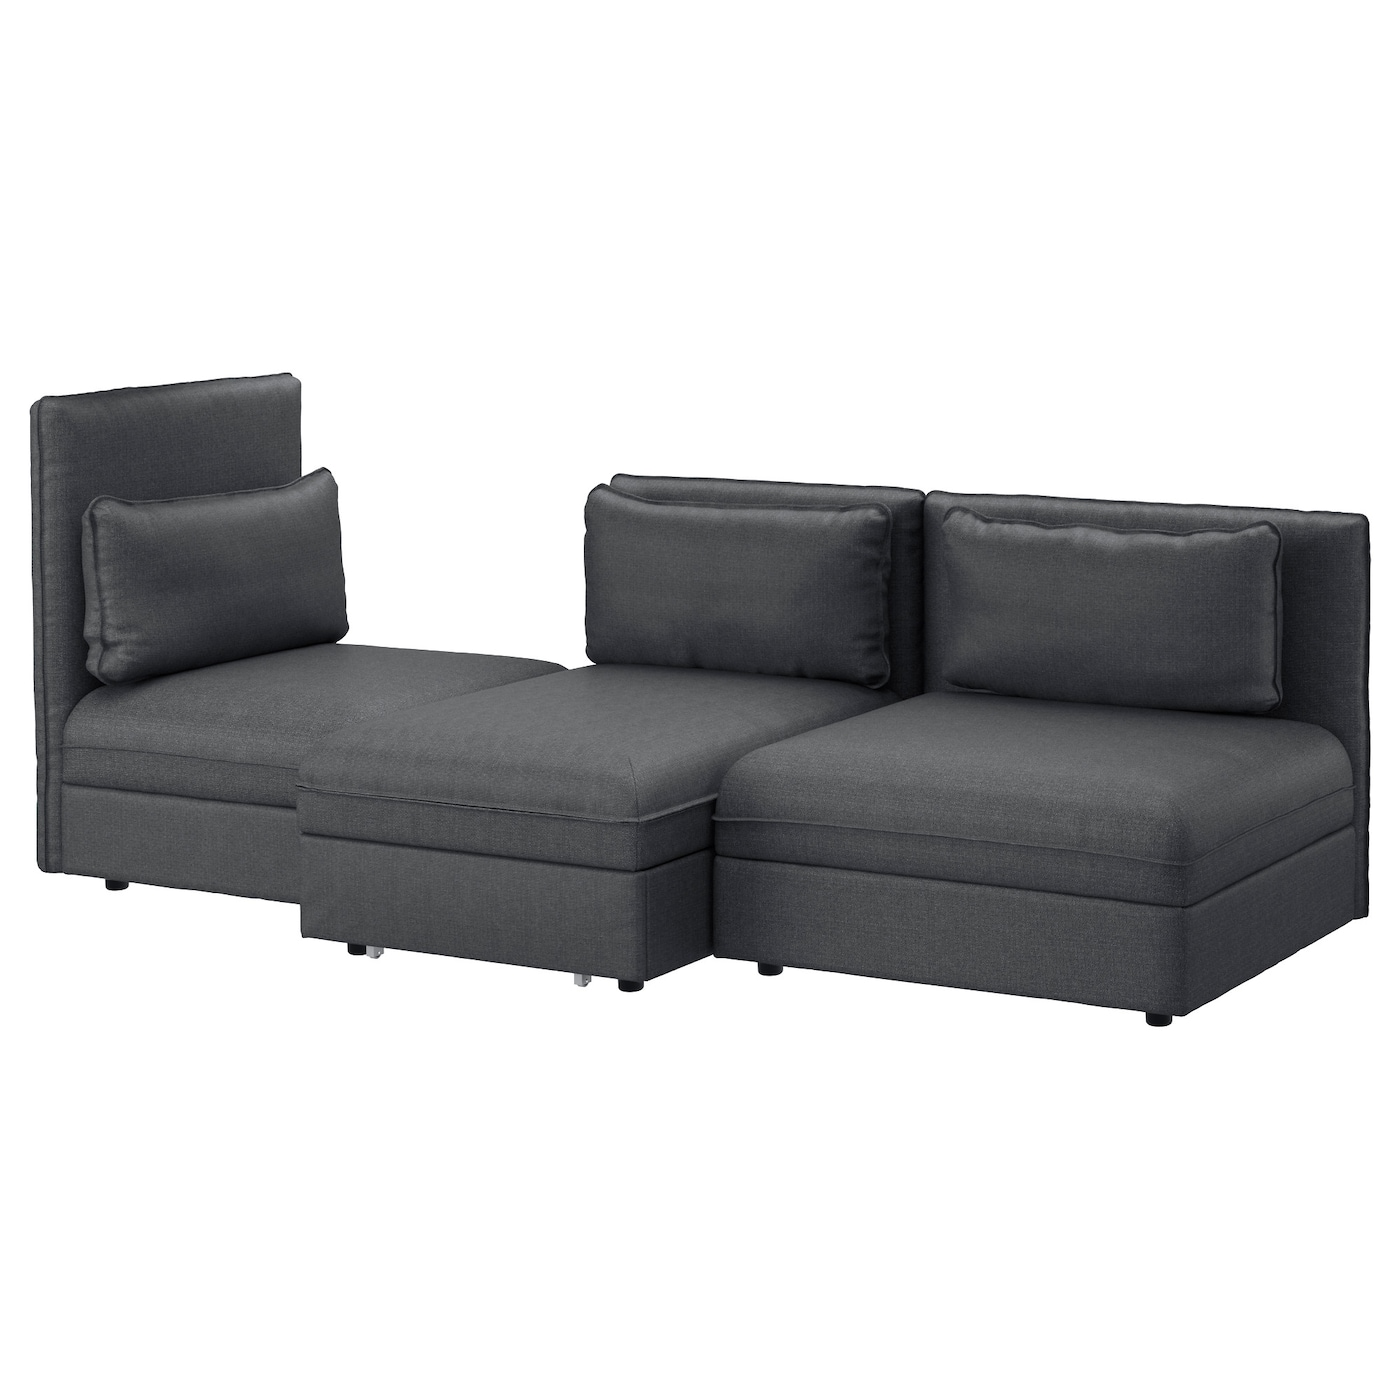 VALLENTUNA 3 seat sofa with bed Hillared dark grey IKEA